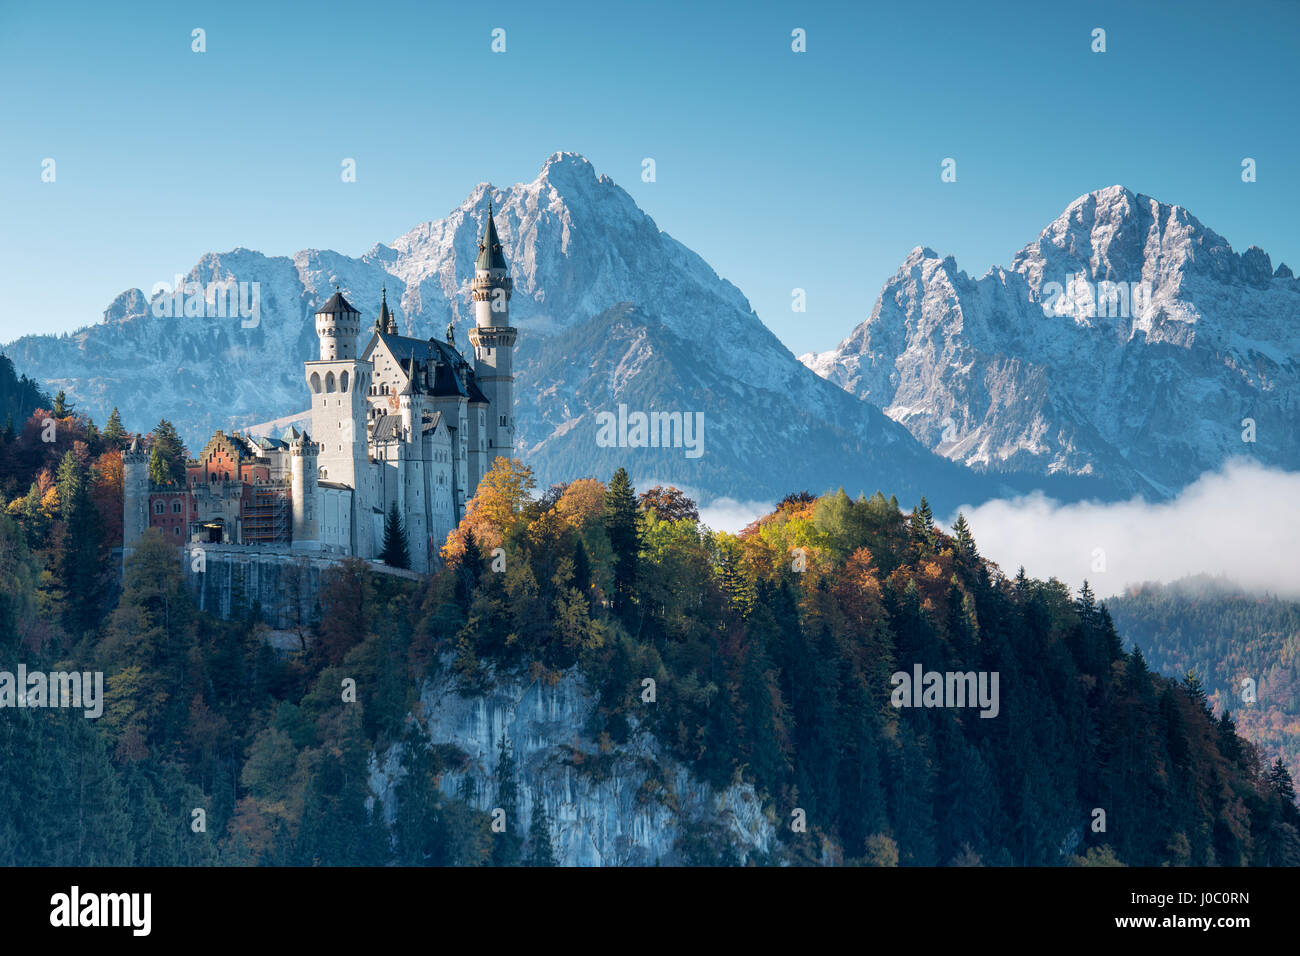 Neuschwanstein Castle surrounded by colorful woods and snowy peaks, Fussen, Bavaria, Germany - Stock Image